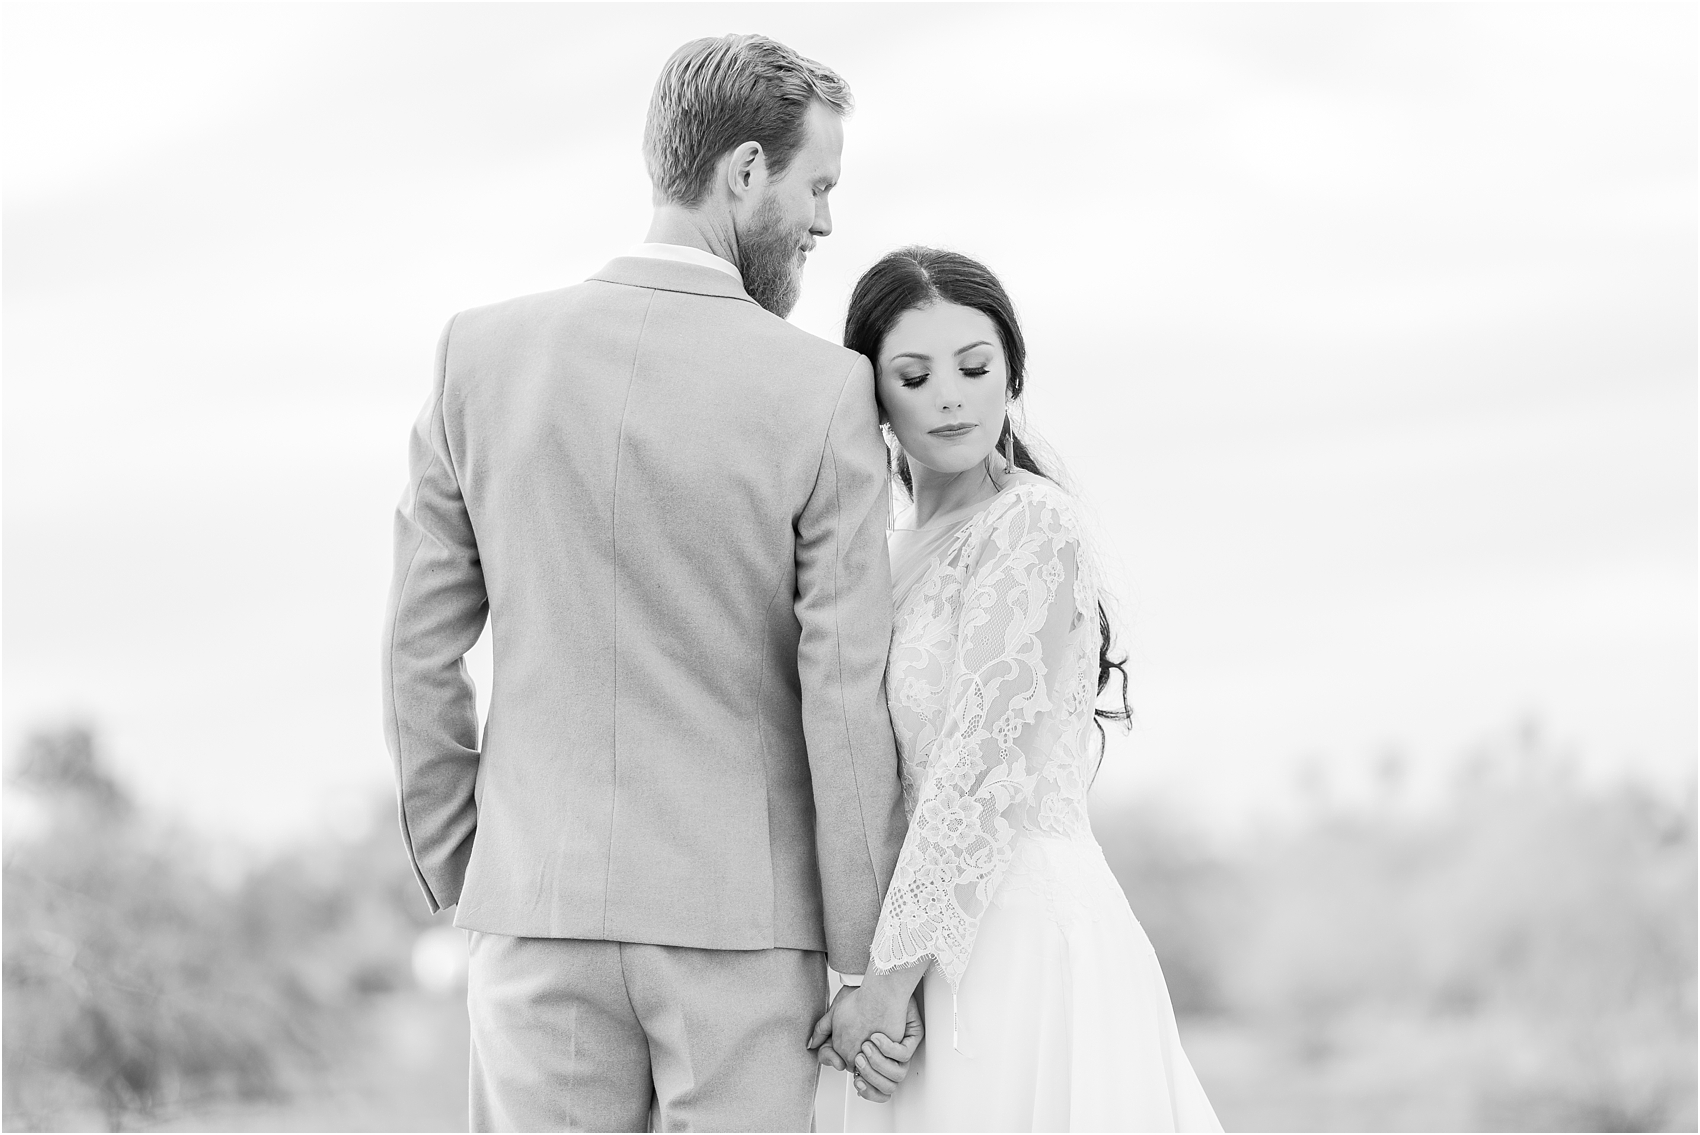 intimate-and-romantic-desert-wedding-photos-at-phoenix-marriott-tempe-at-the-buttes-in-tempe-arizona-by-courtney-carolyn-photography_0019.jpg